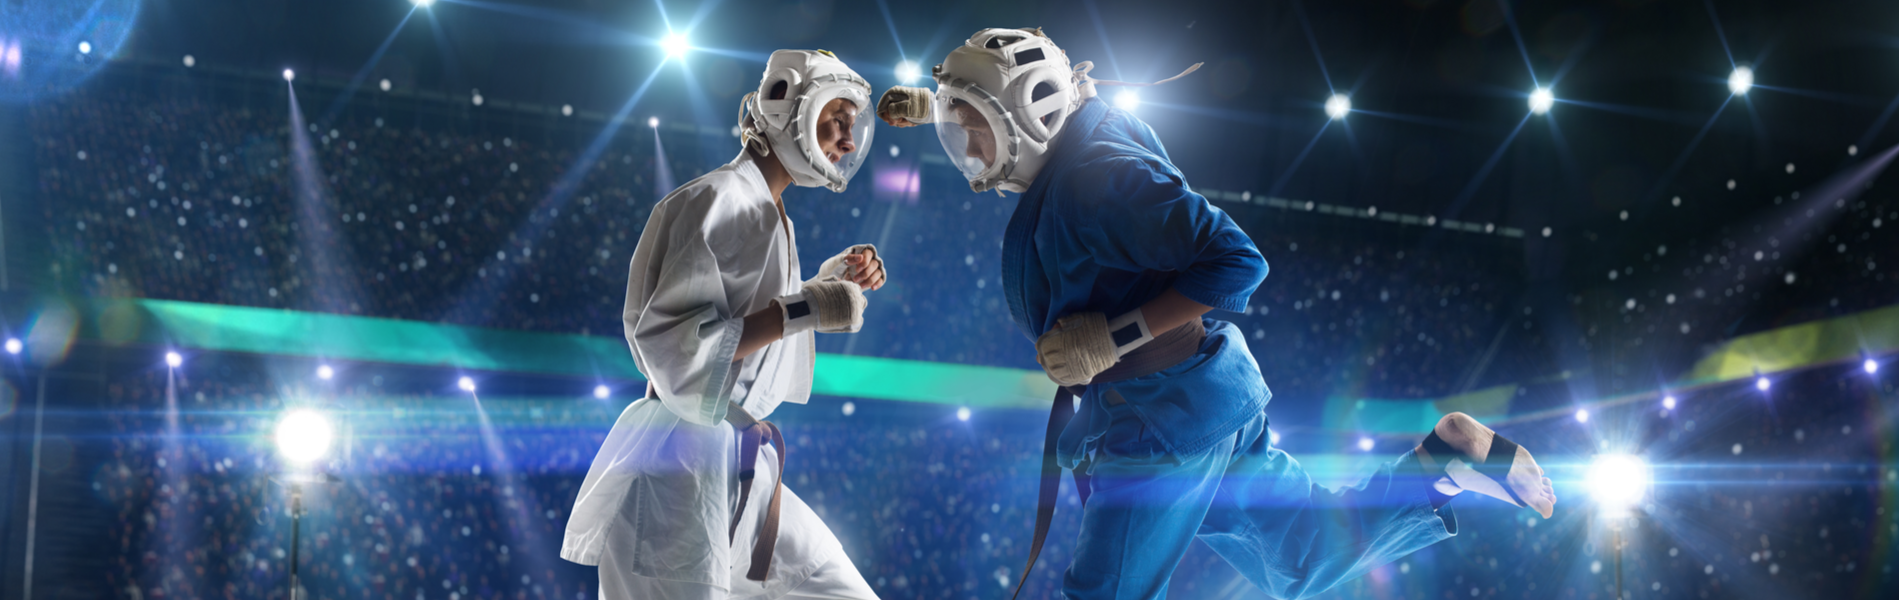 5 Tips for Running your First Martial Arts Tournament As a School